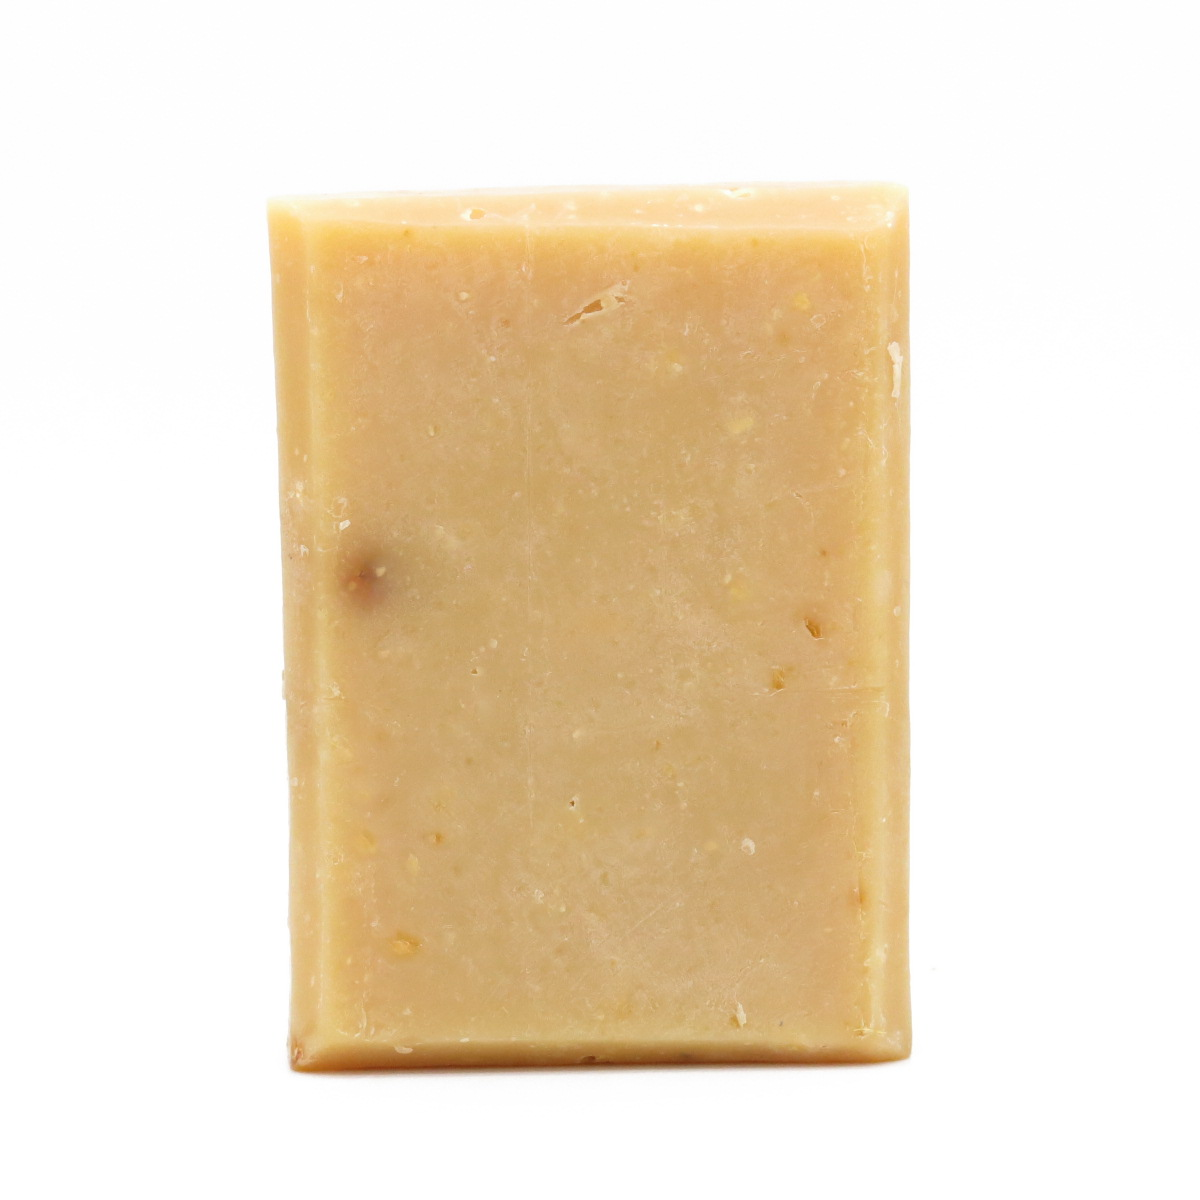 Avocado, Silk Protein Soap with Orange Juice and Essential Oil